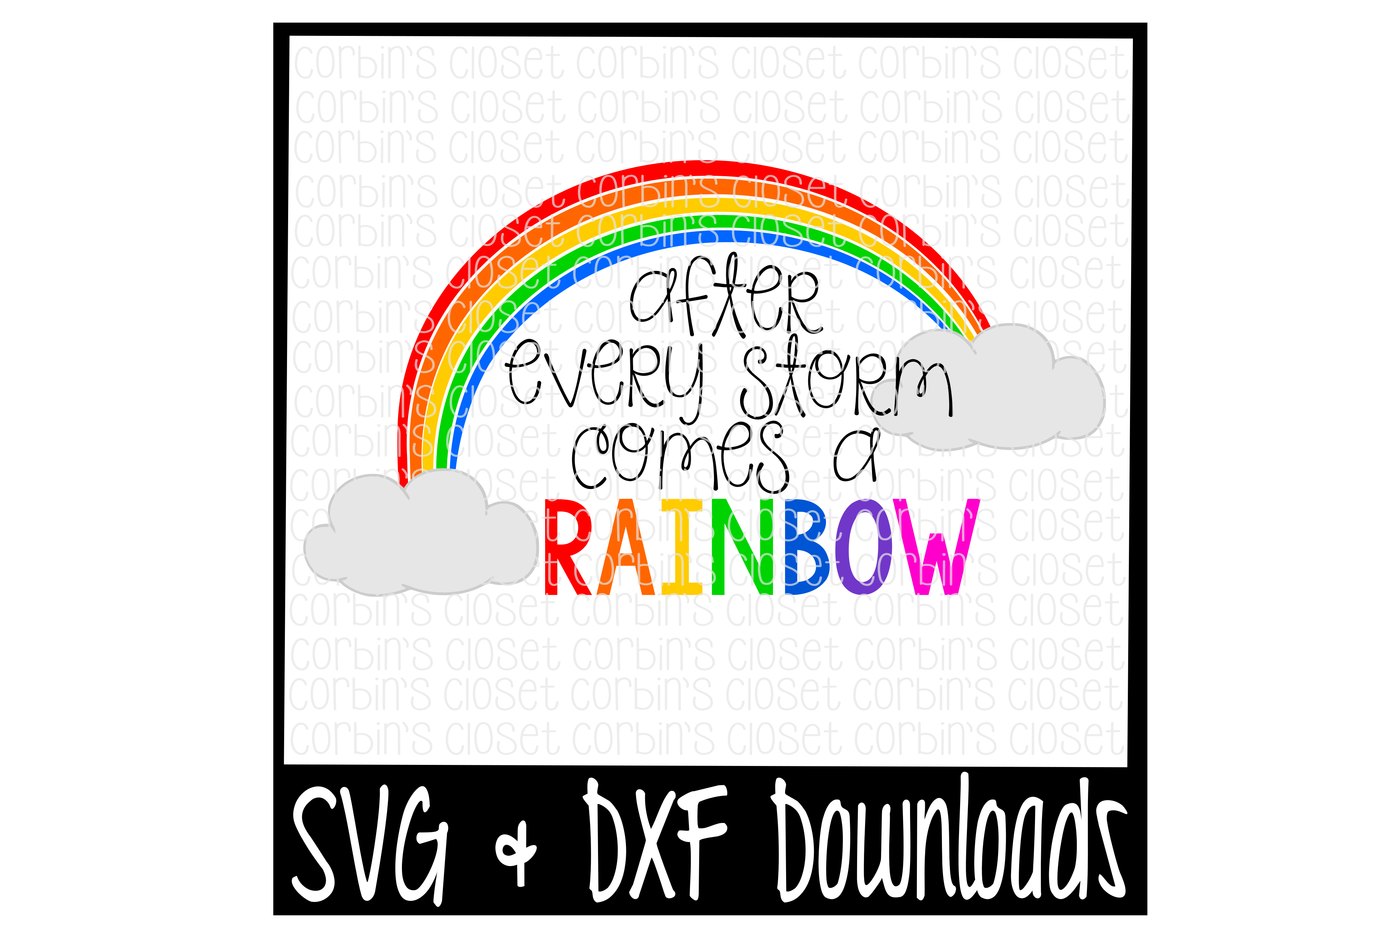 After Every Storm Comes A Rainbow Rainbow Baby Cutting File By